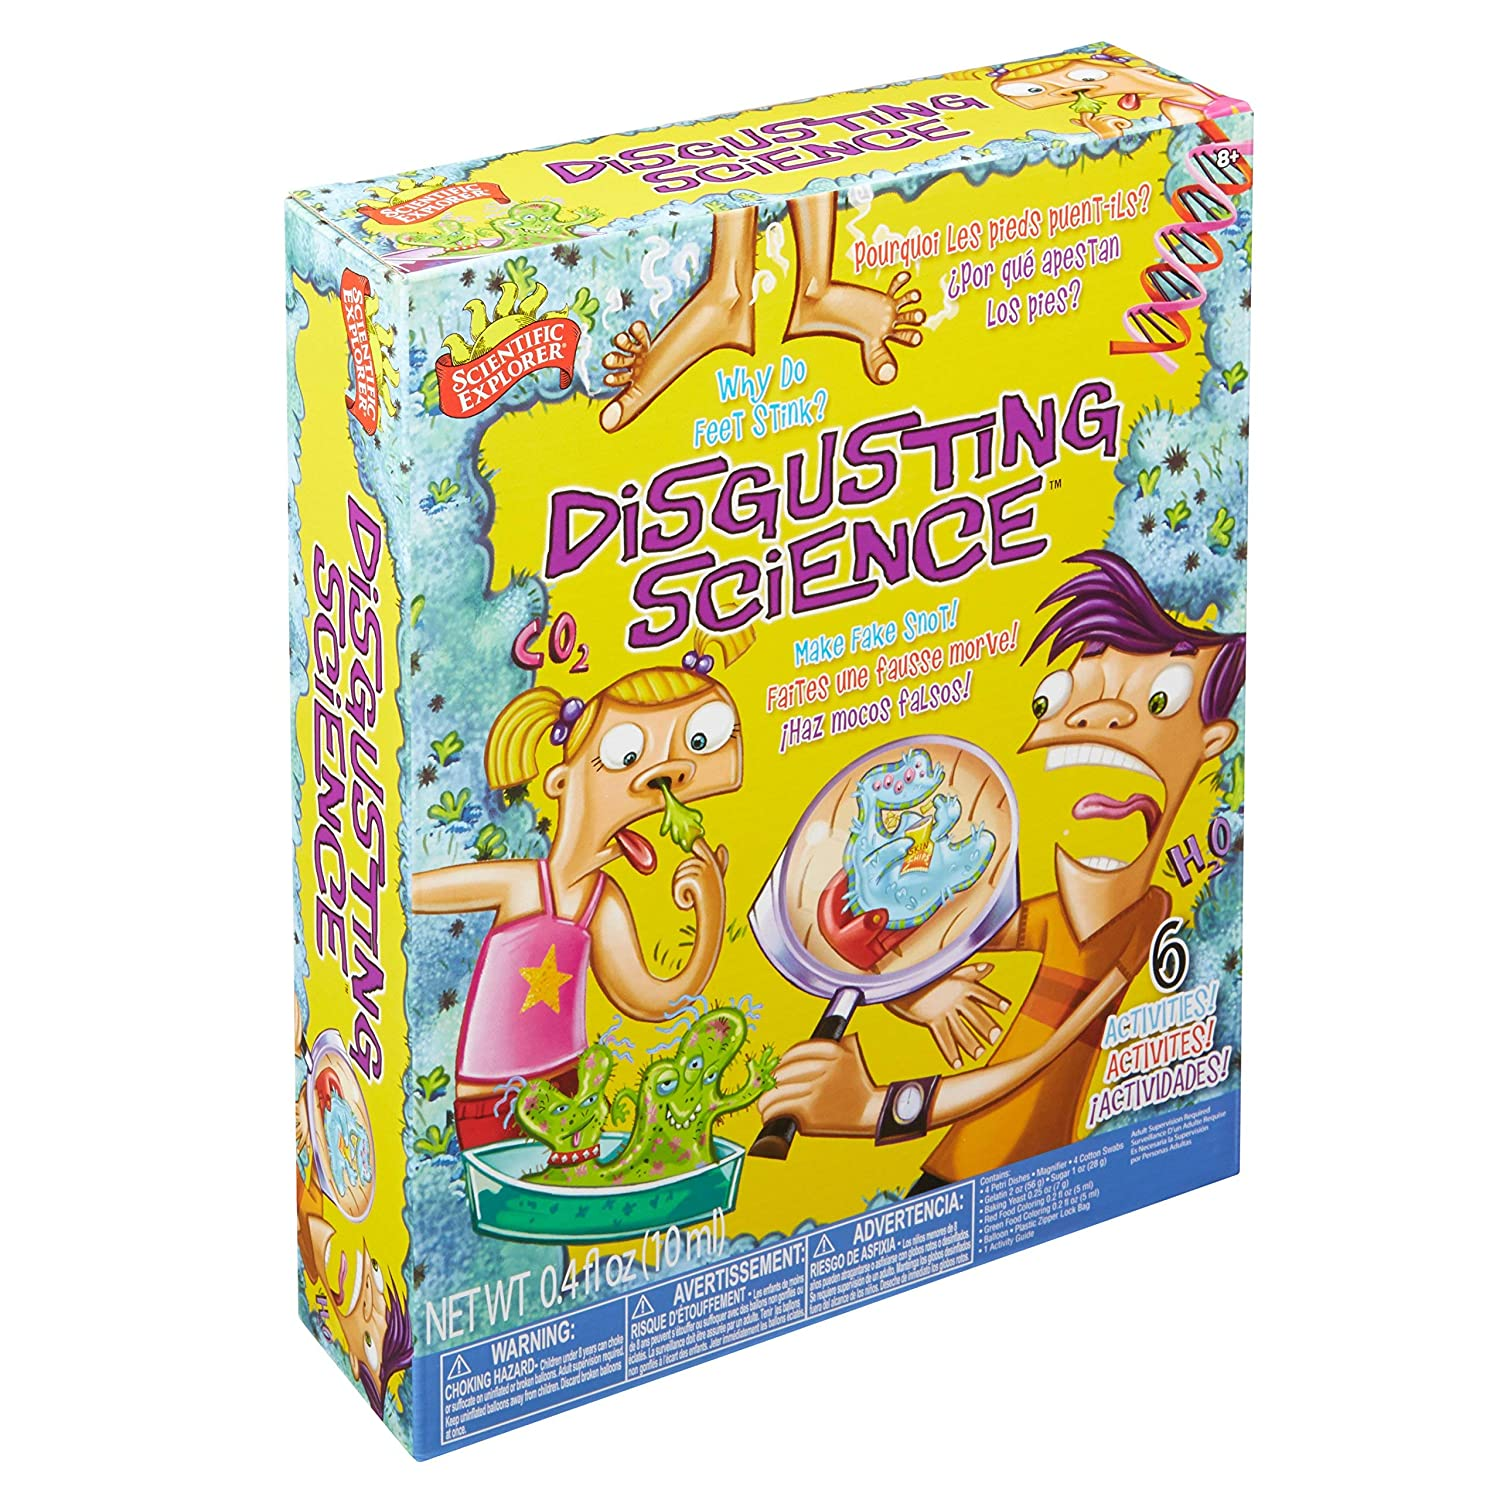 Disgusting Science-Best science Kits for kids